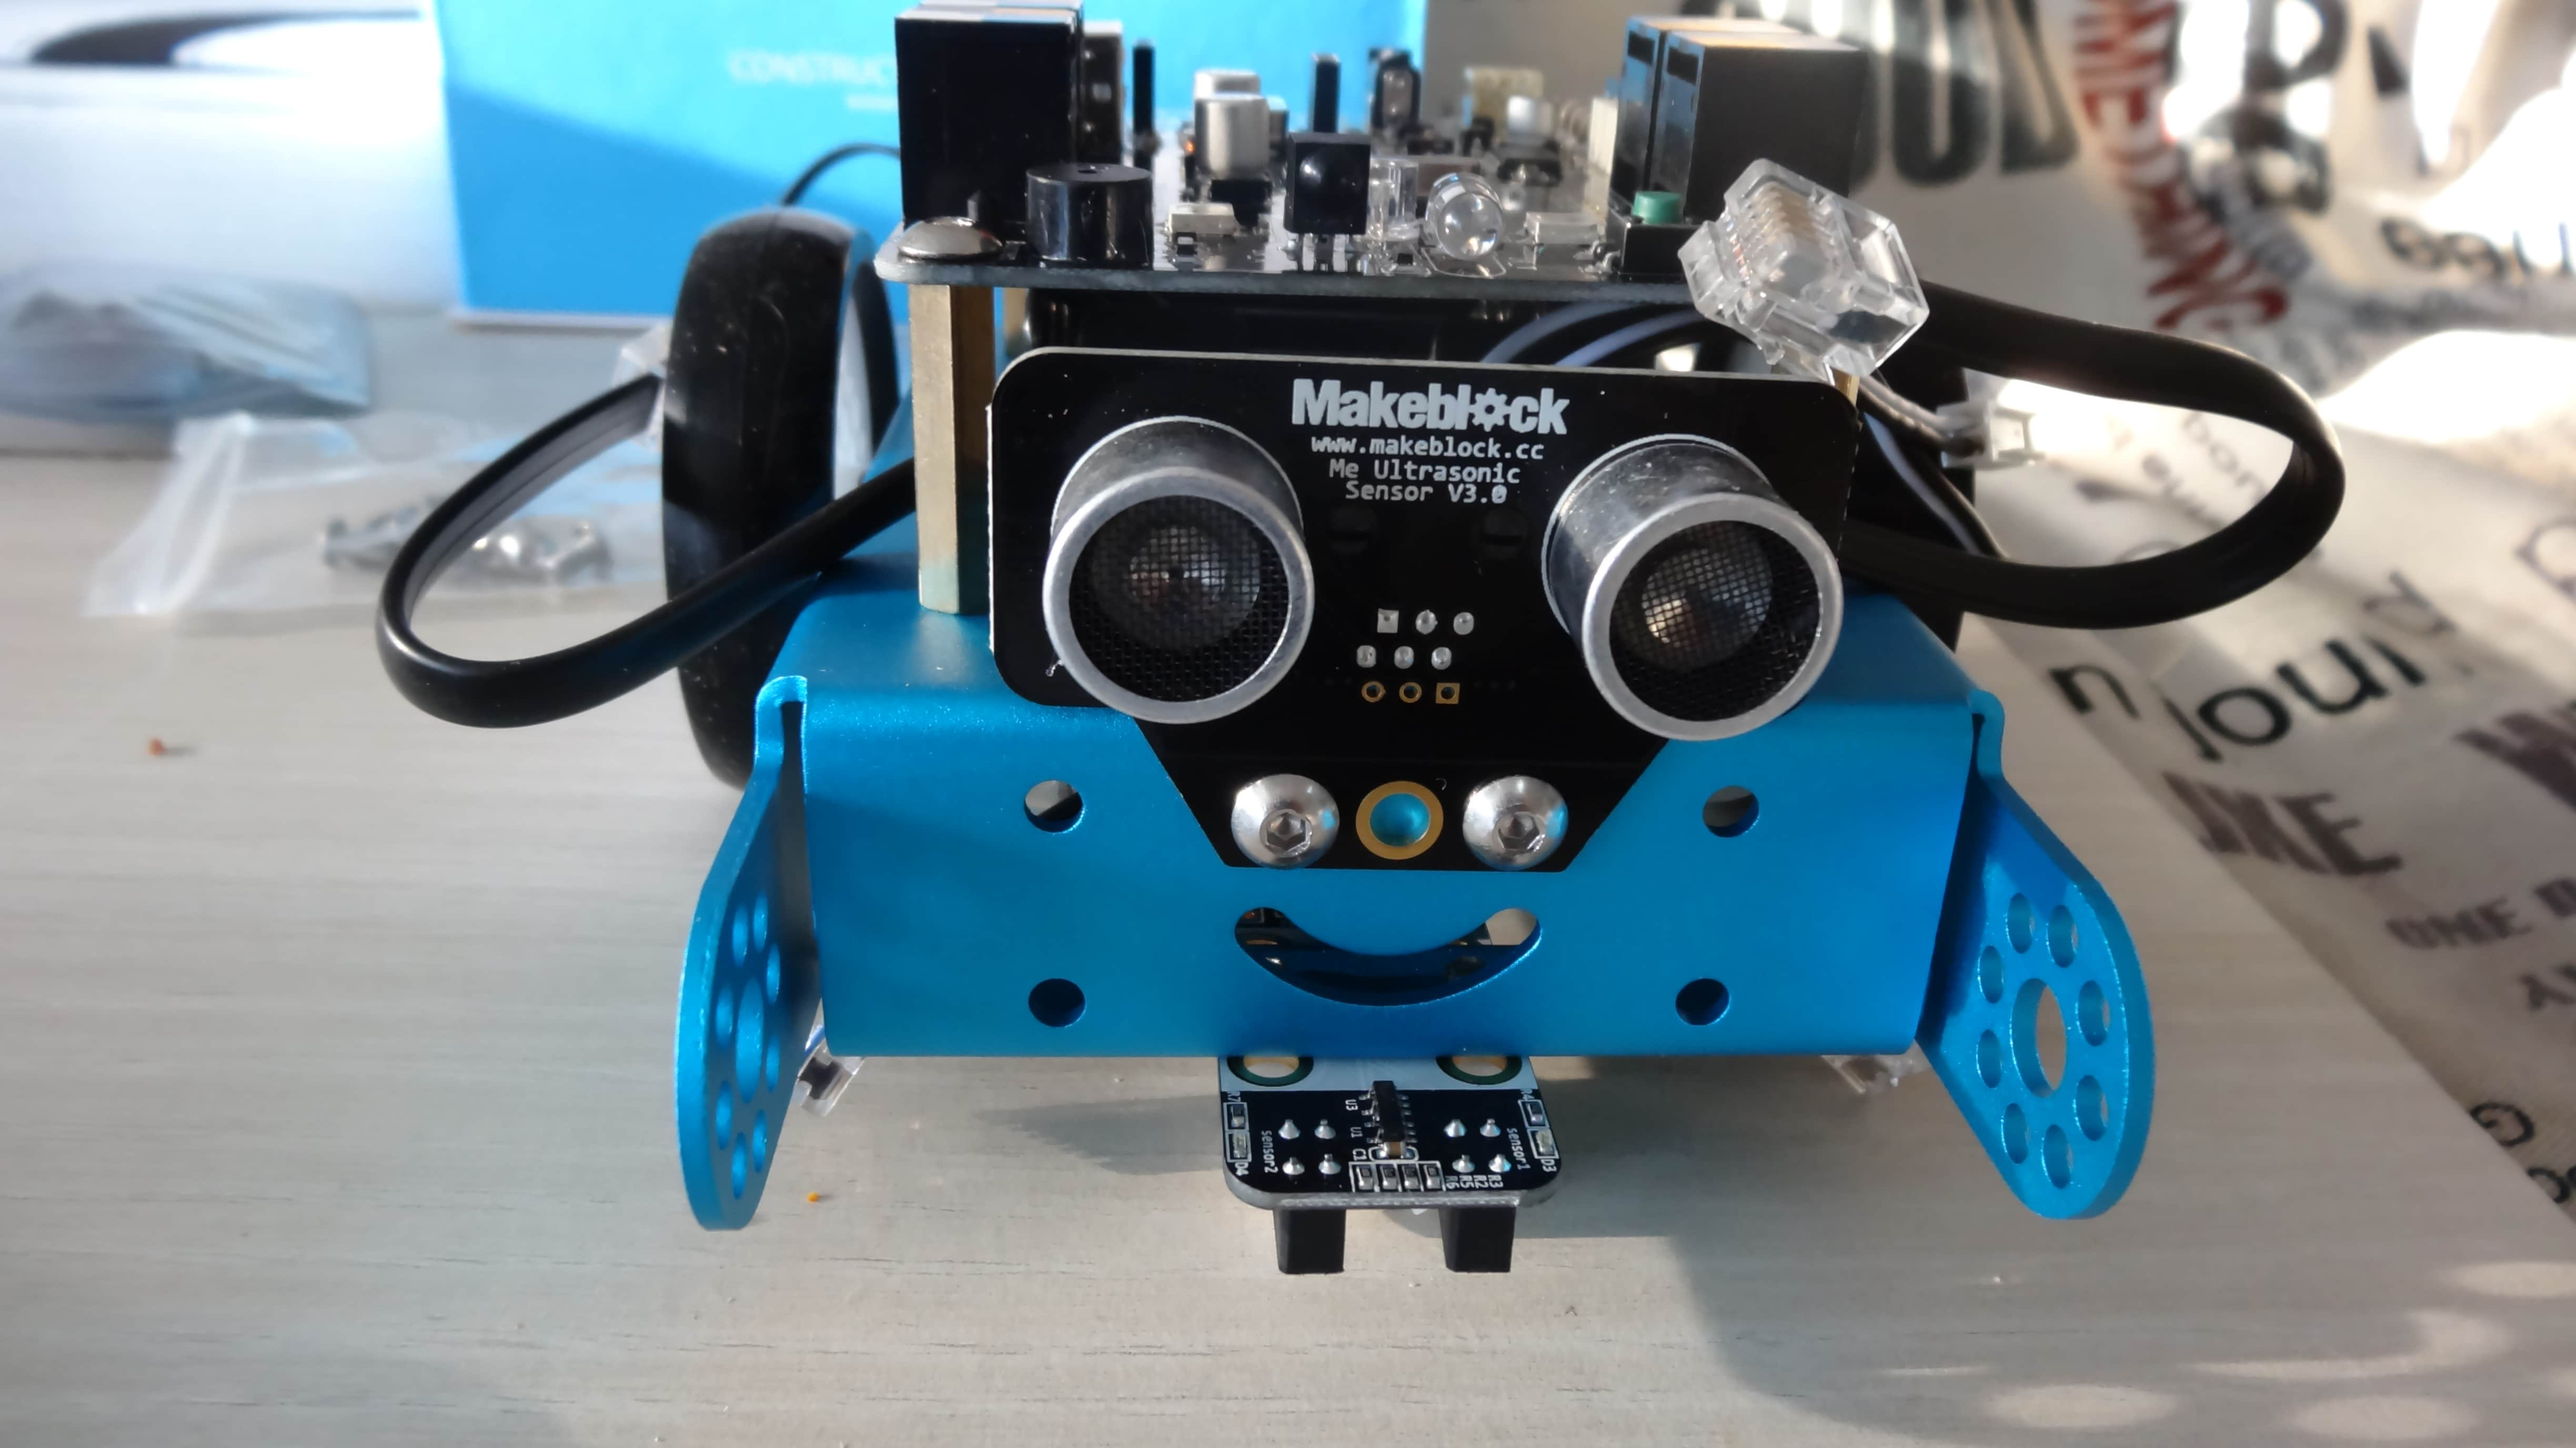 mbot-blue-un-robot-educatif-et-programmable-en-version-2-4-g-tres-interessant-legaragedupc-fr-33